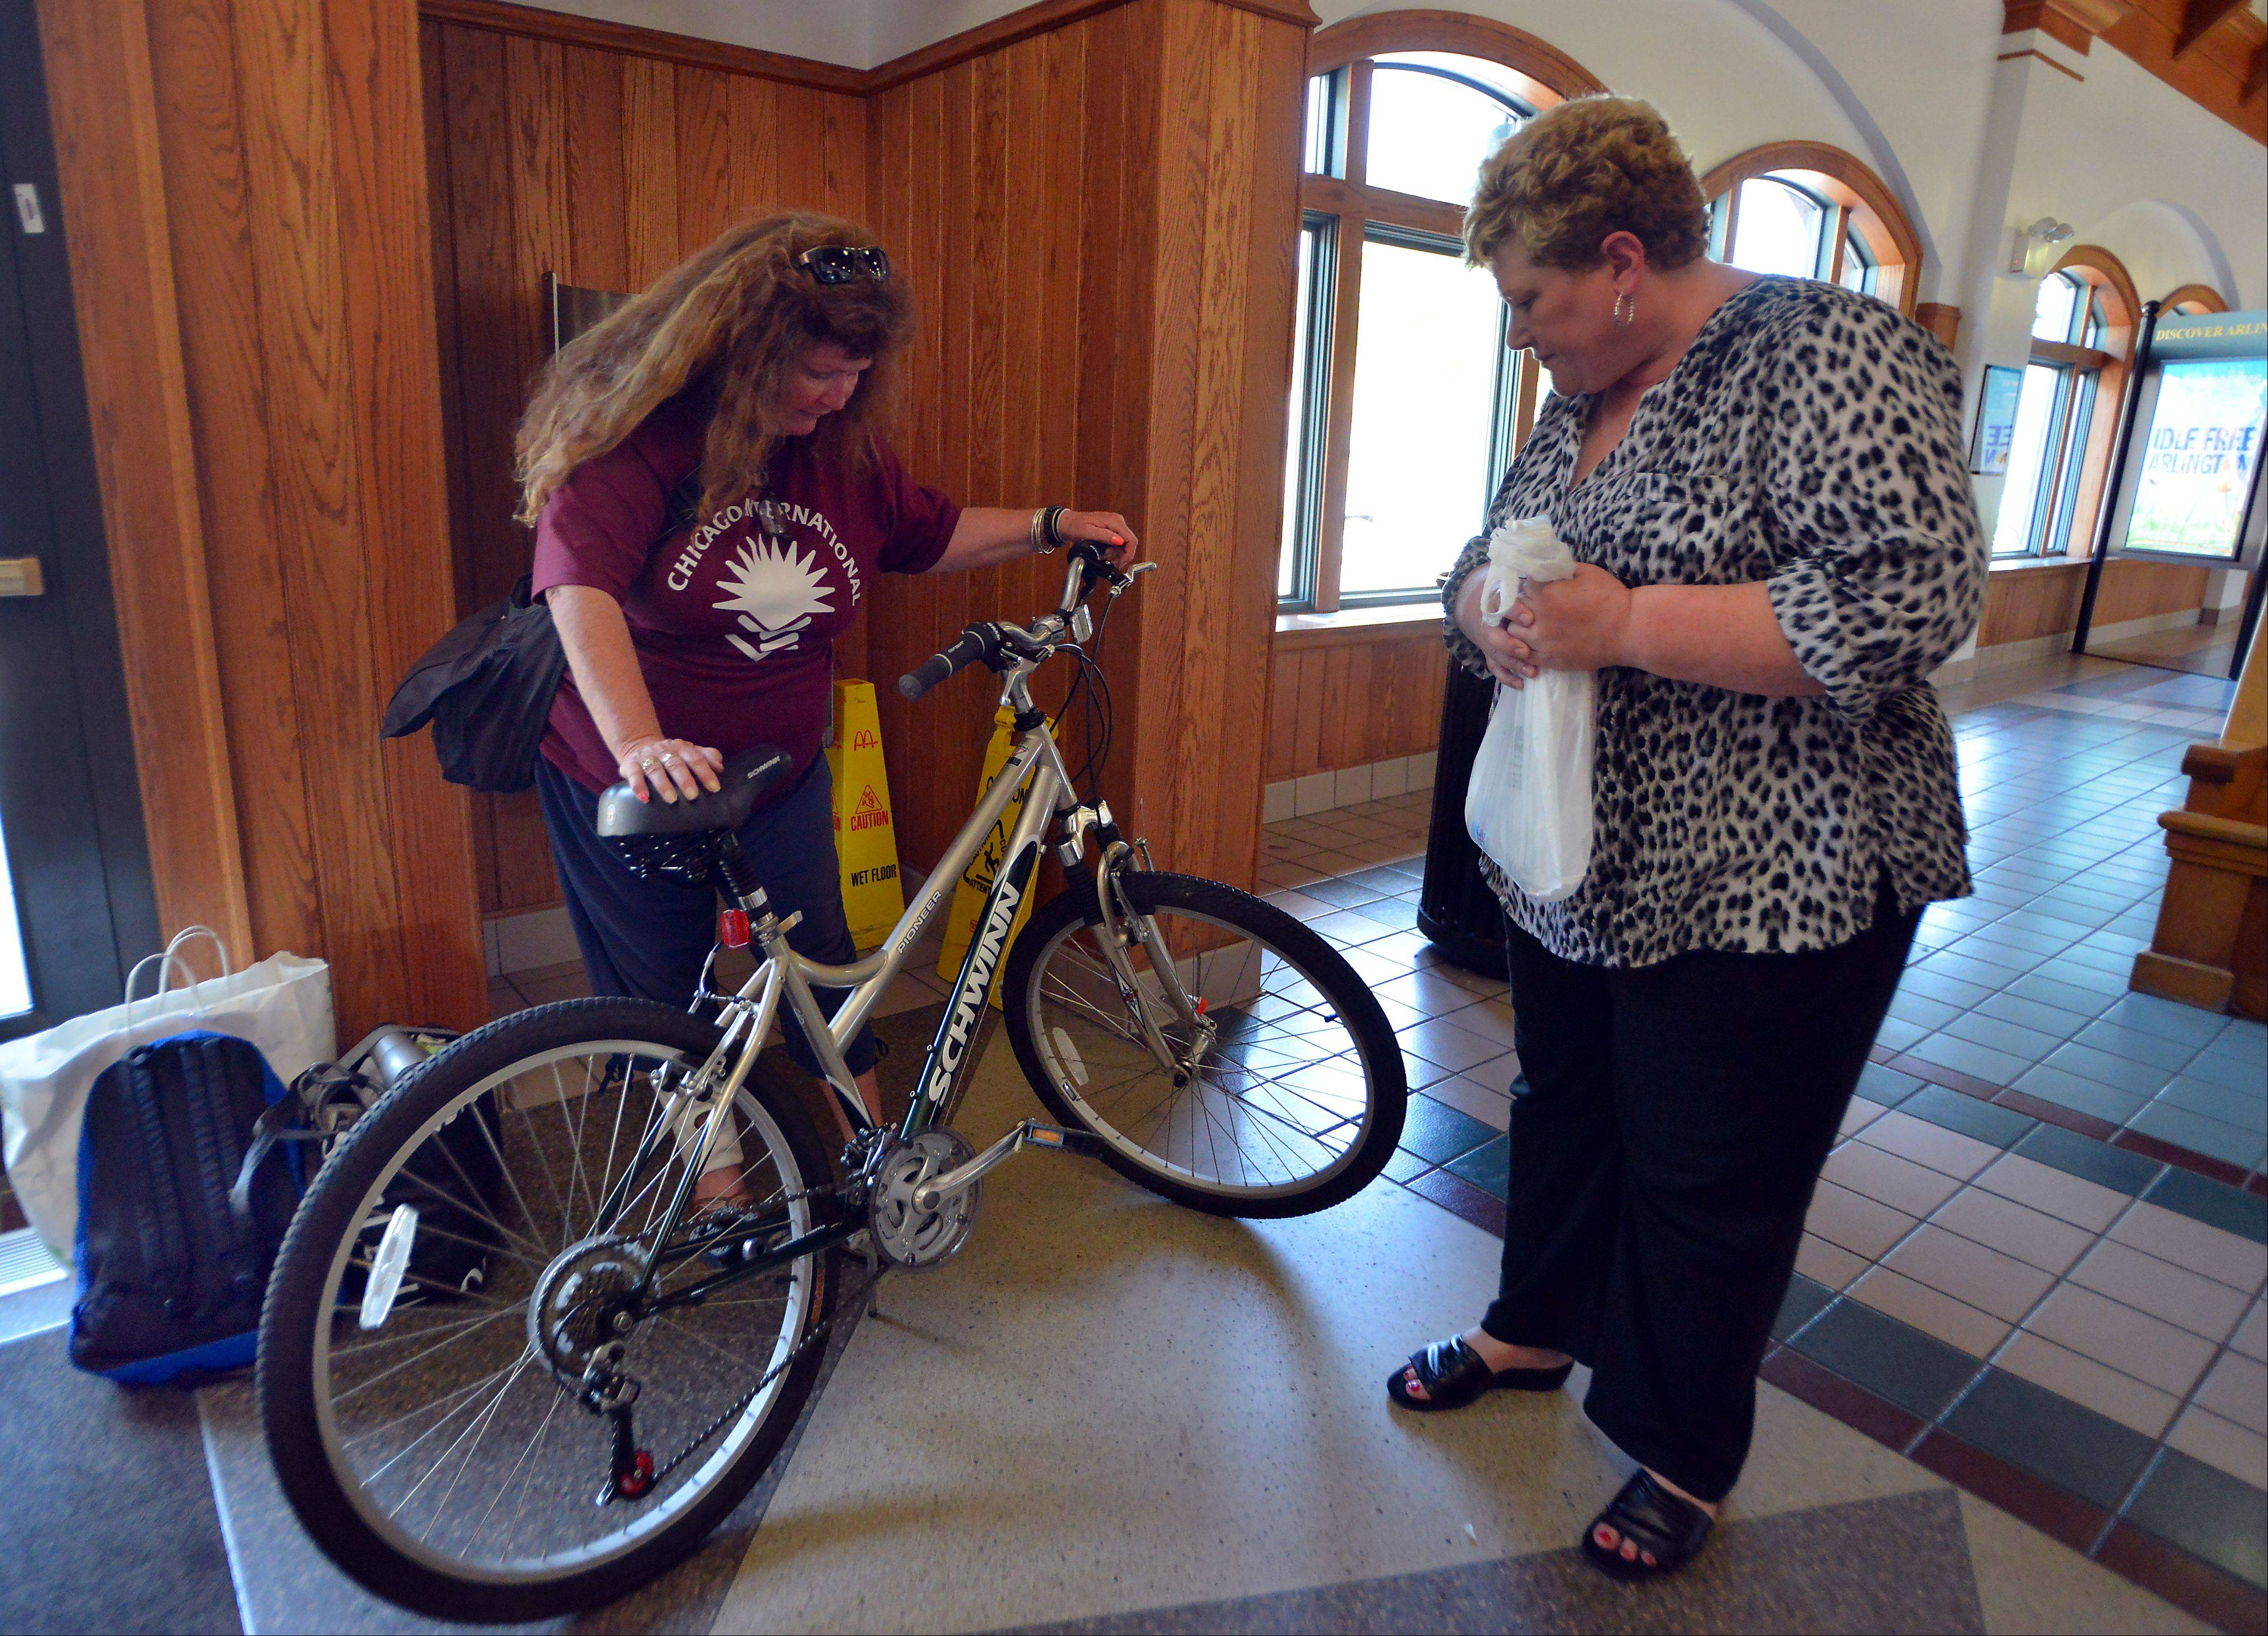 Kathy Kelly of Hoffman Estates, right, and Rosan Acosta look over Acosta's new bike.